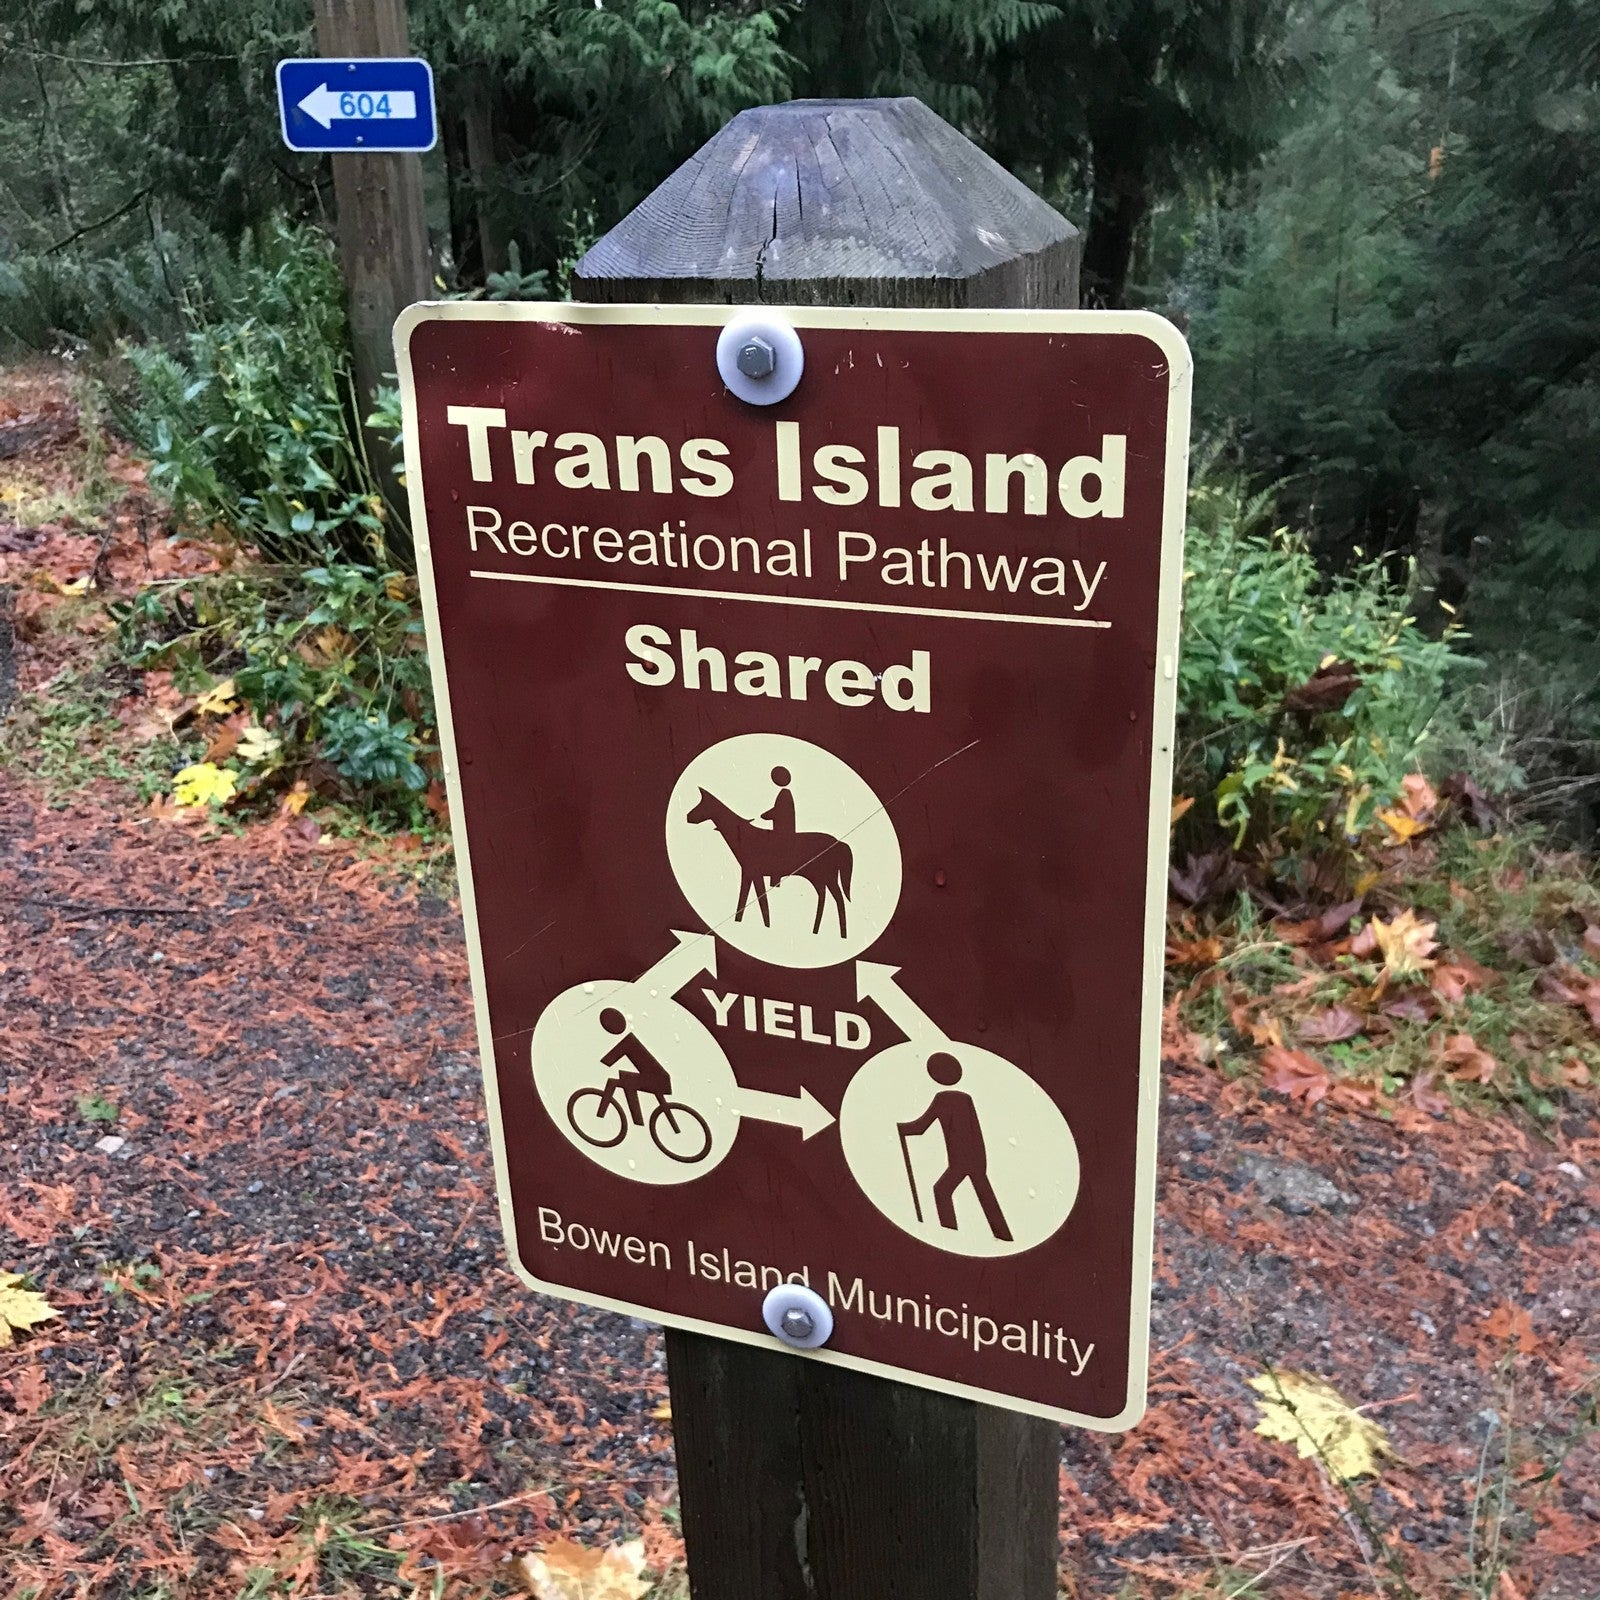 Bowen Island trail network